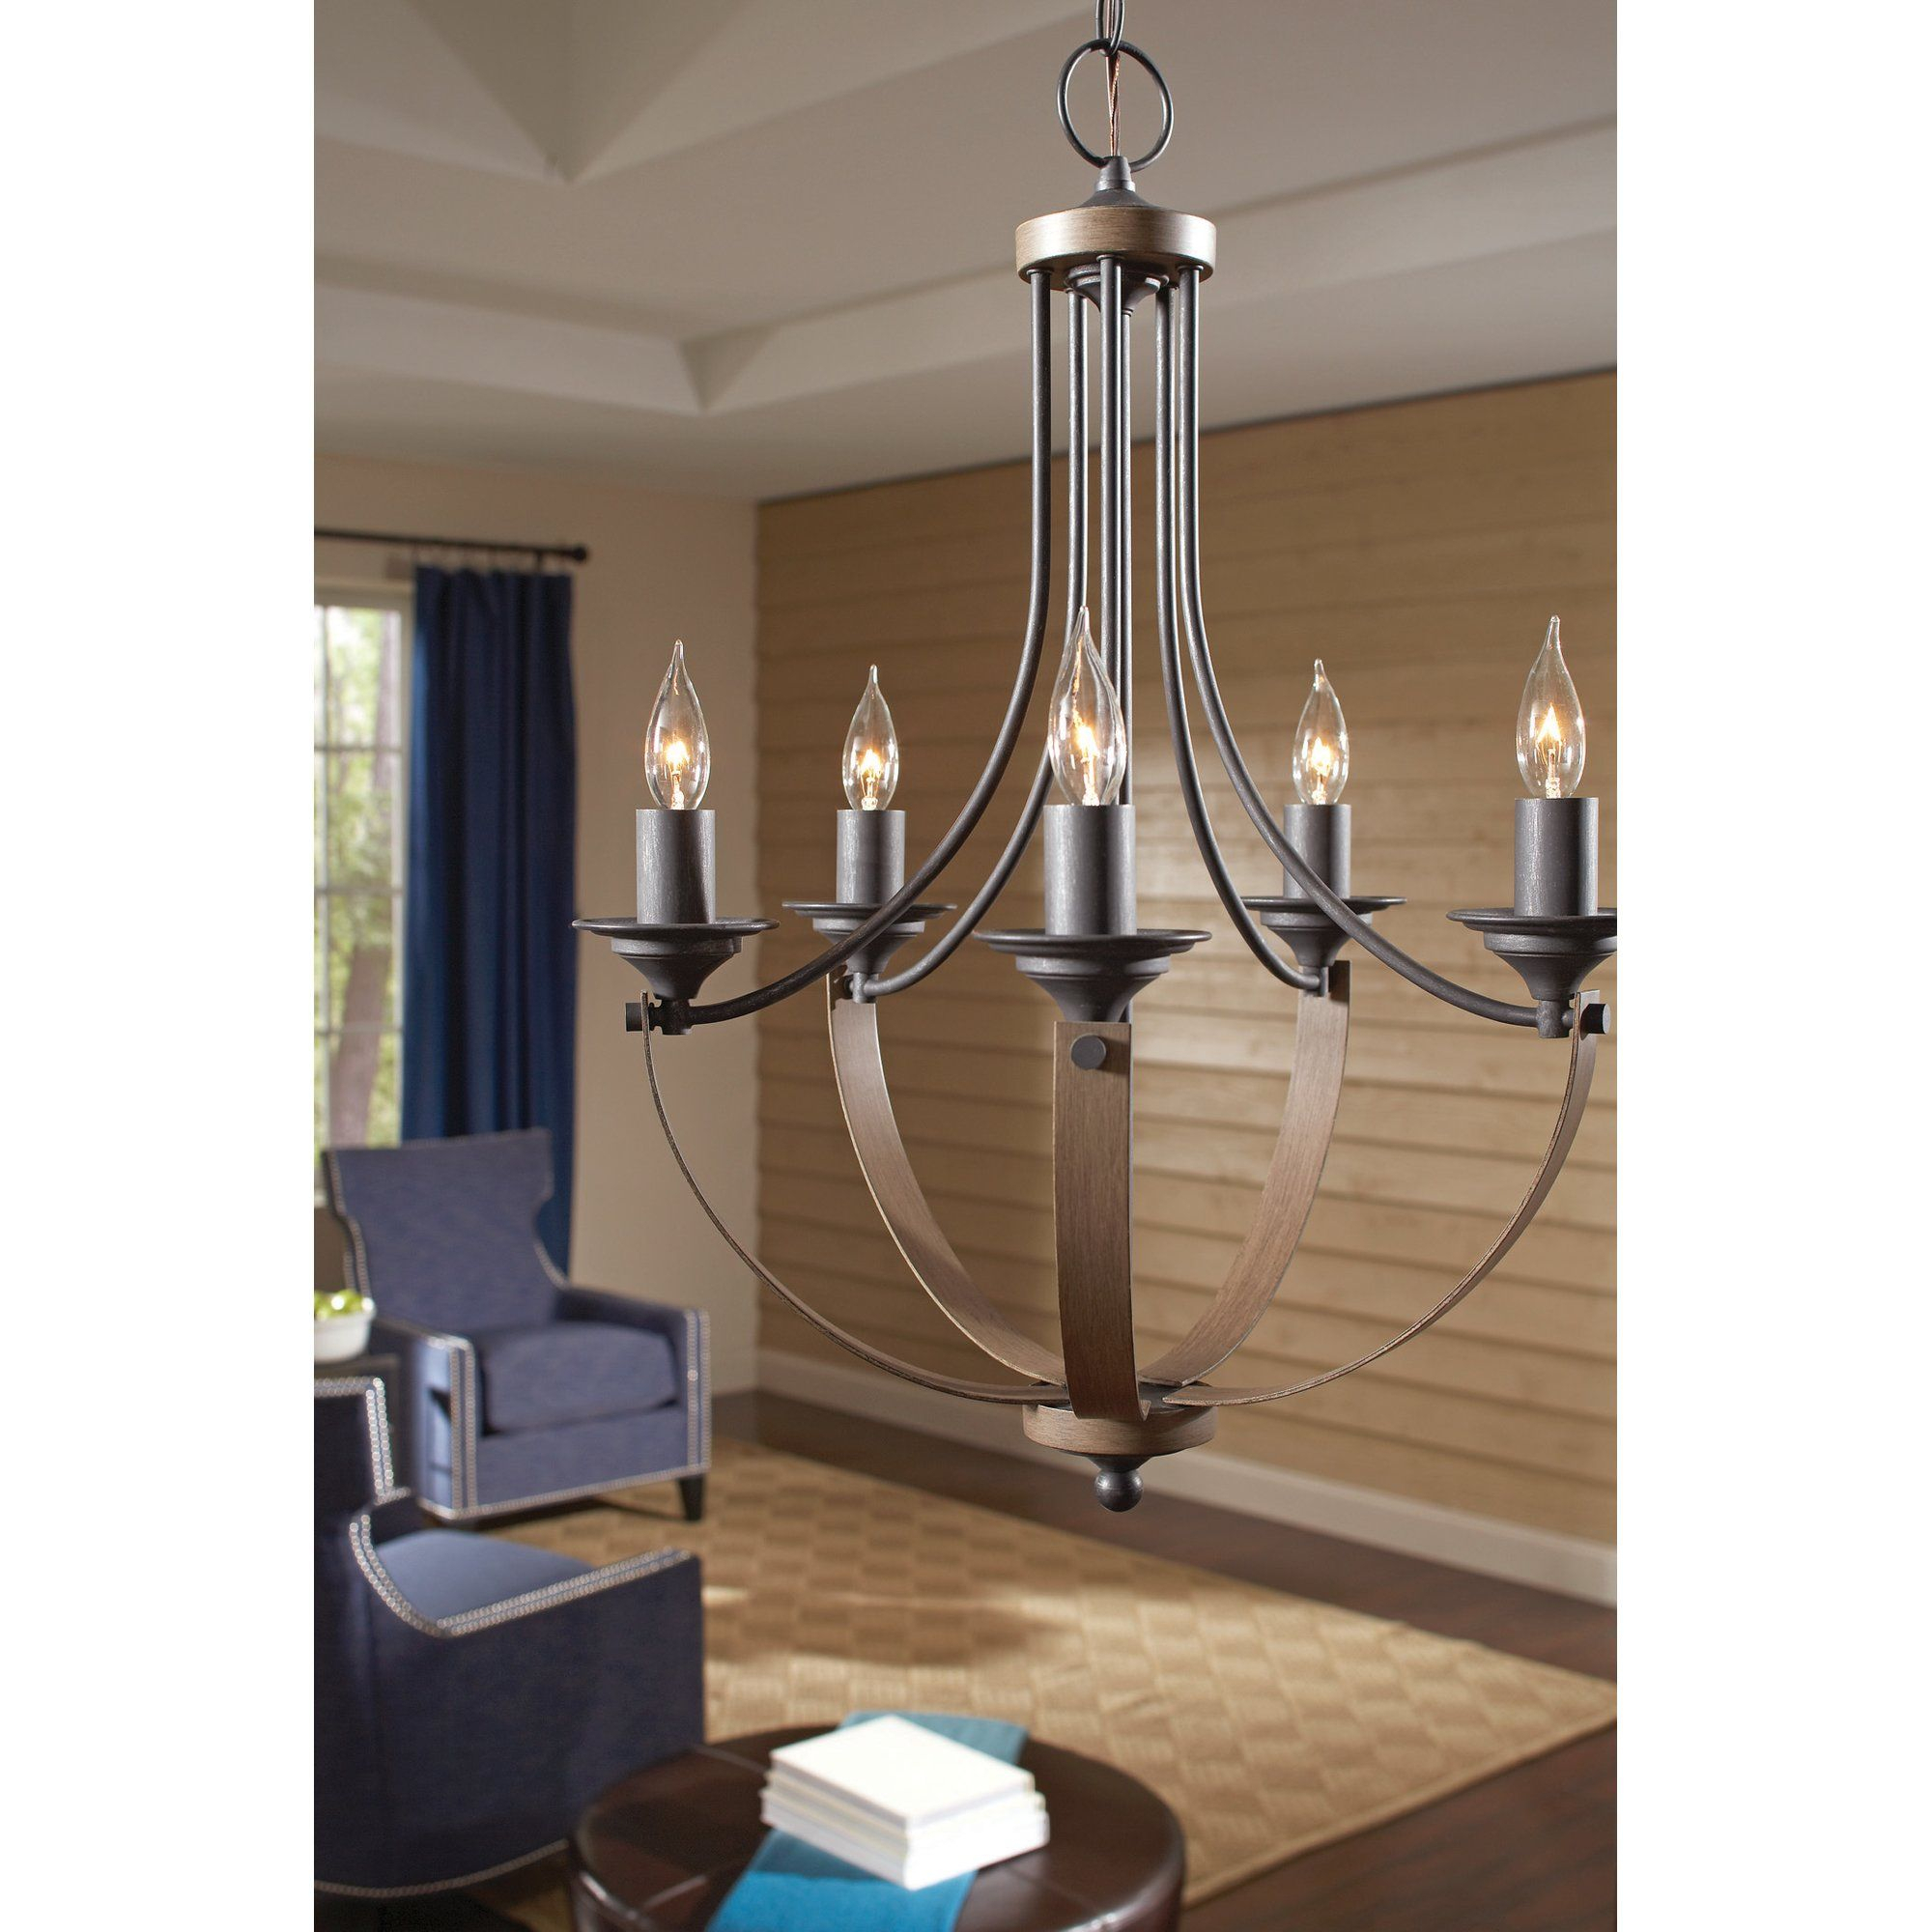 25 Camilla 9 Light Candle Style Chandelier – Divineducation Pertaining To Armande Candle Style Chandeliers (Image 1 of 30)